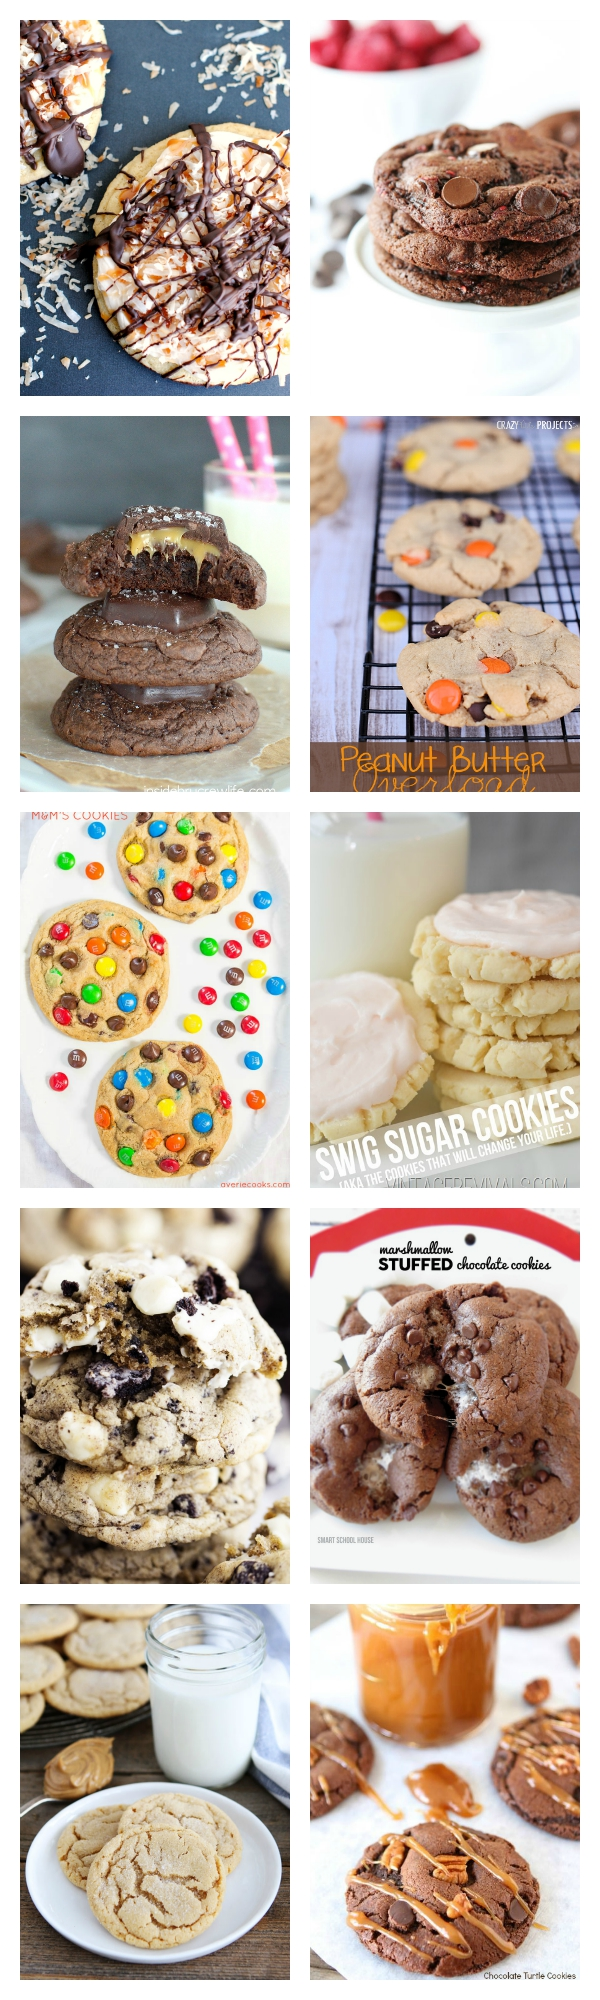 50 Amazing Cookie Recipes to Try